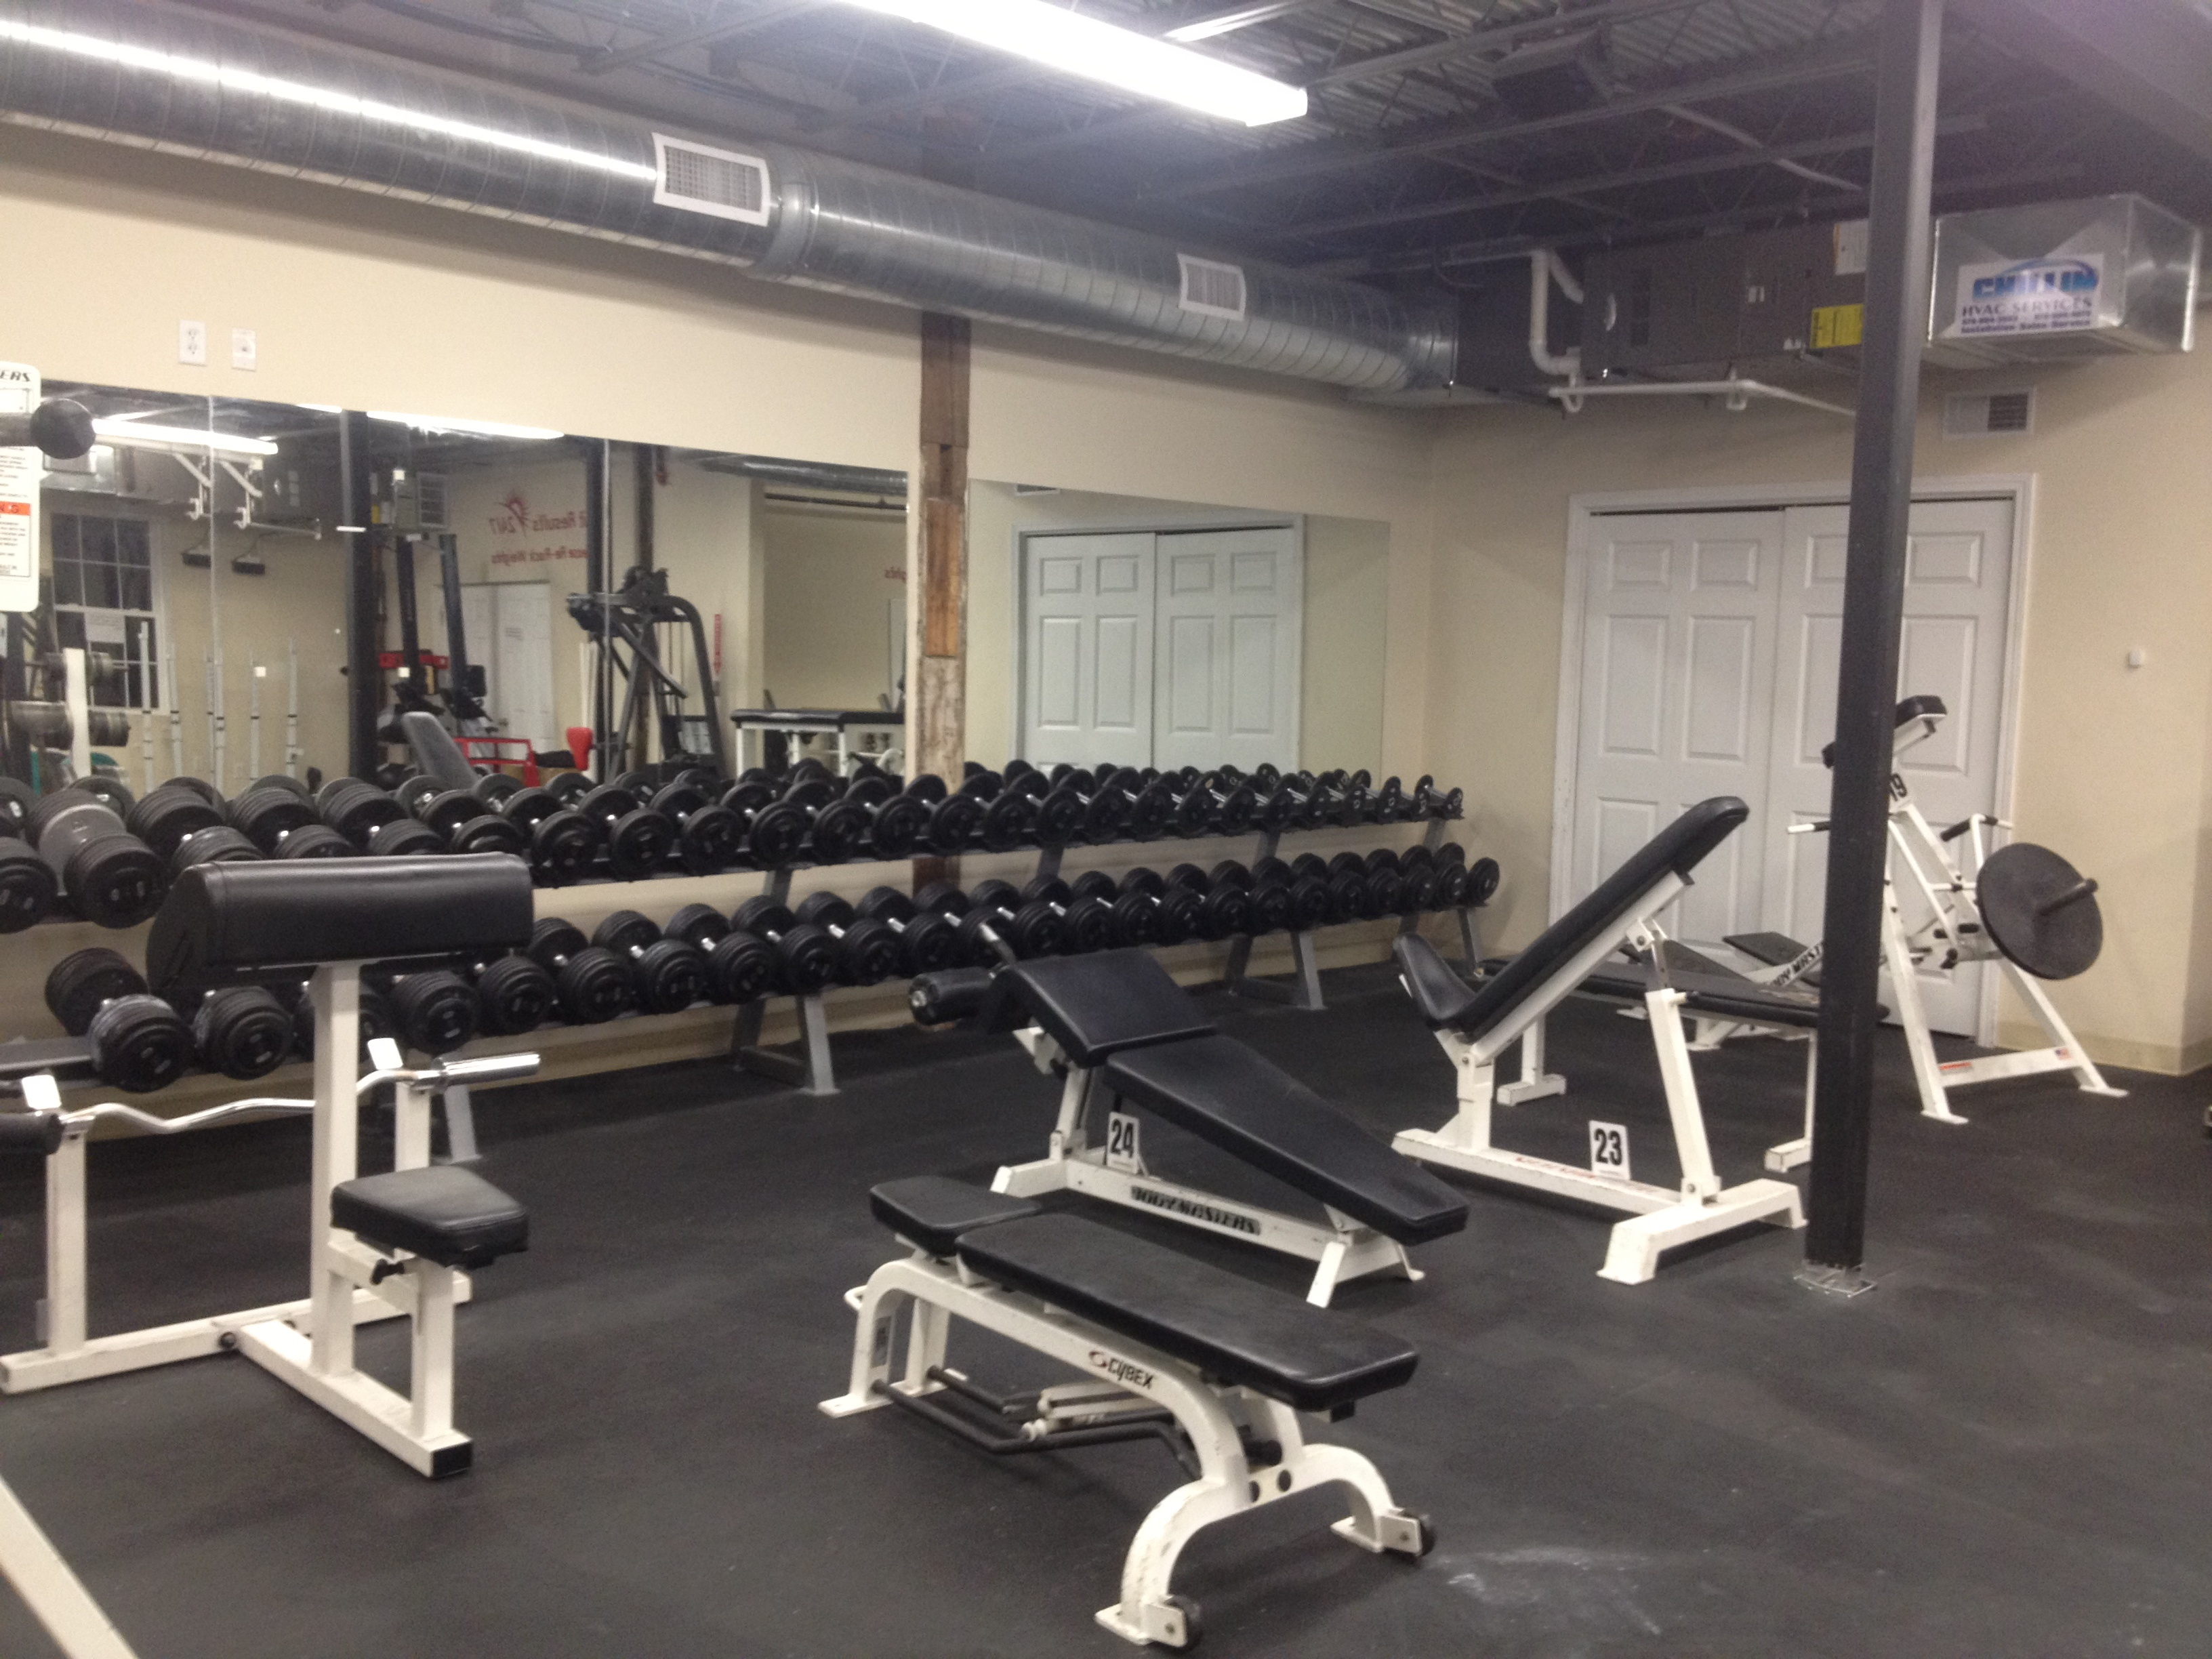 The Adjustable Benches Allow You To Exercise At An Incline Or Decline.  These Are One Of The Most Commonly Used Pieces Of Equipment In The ...